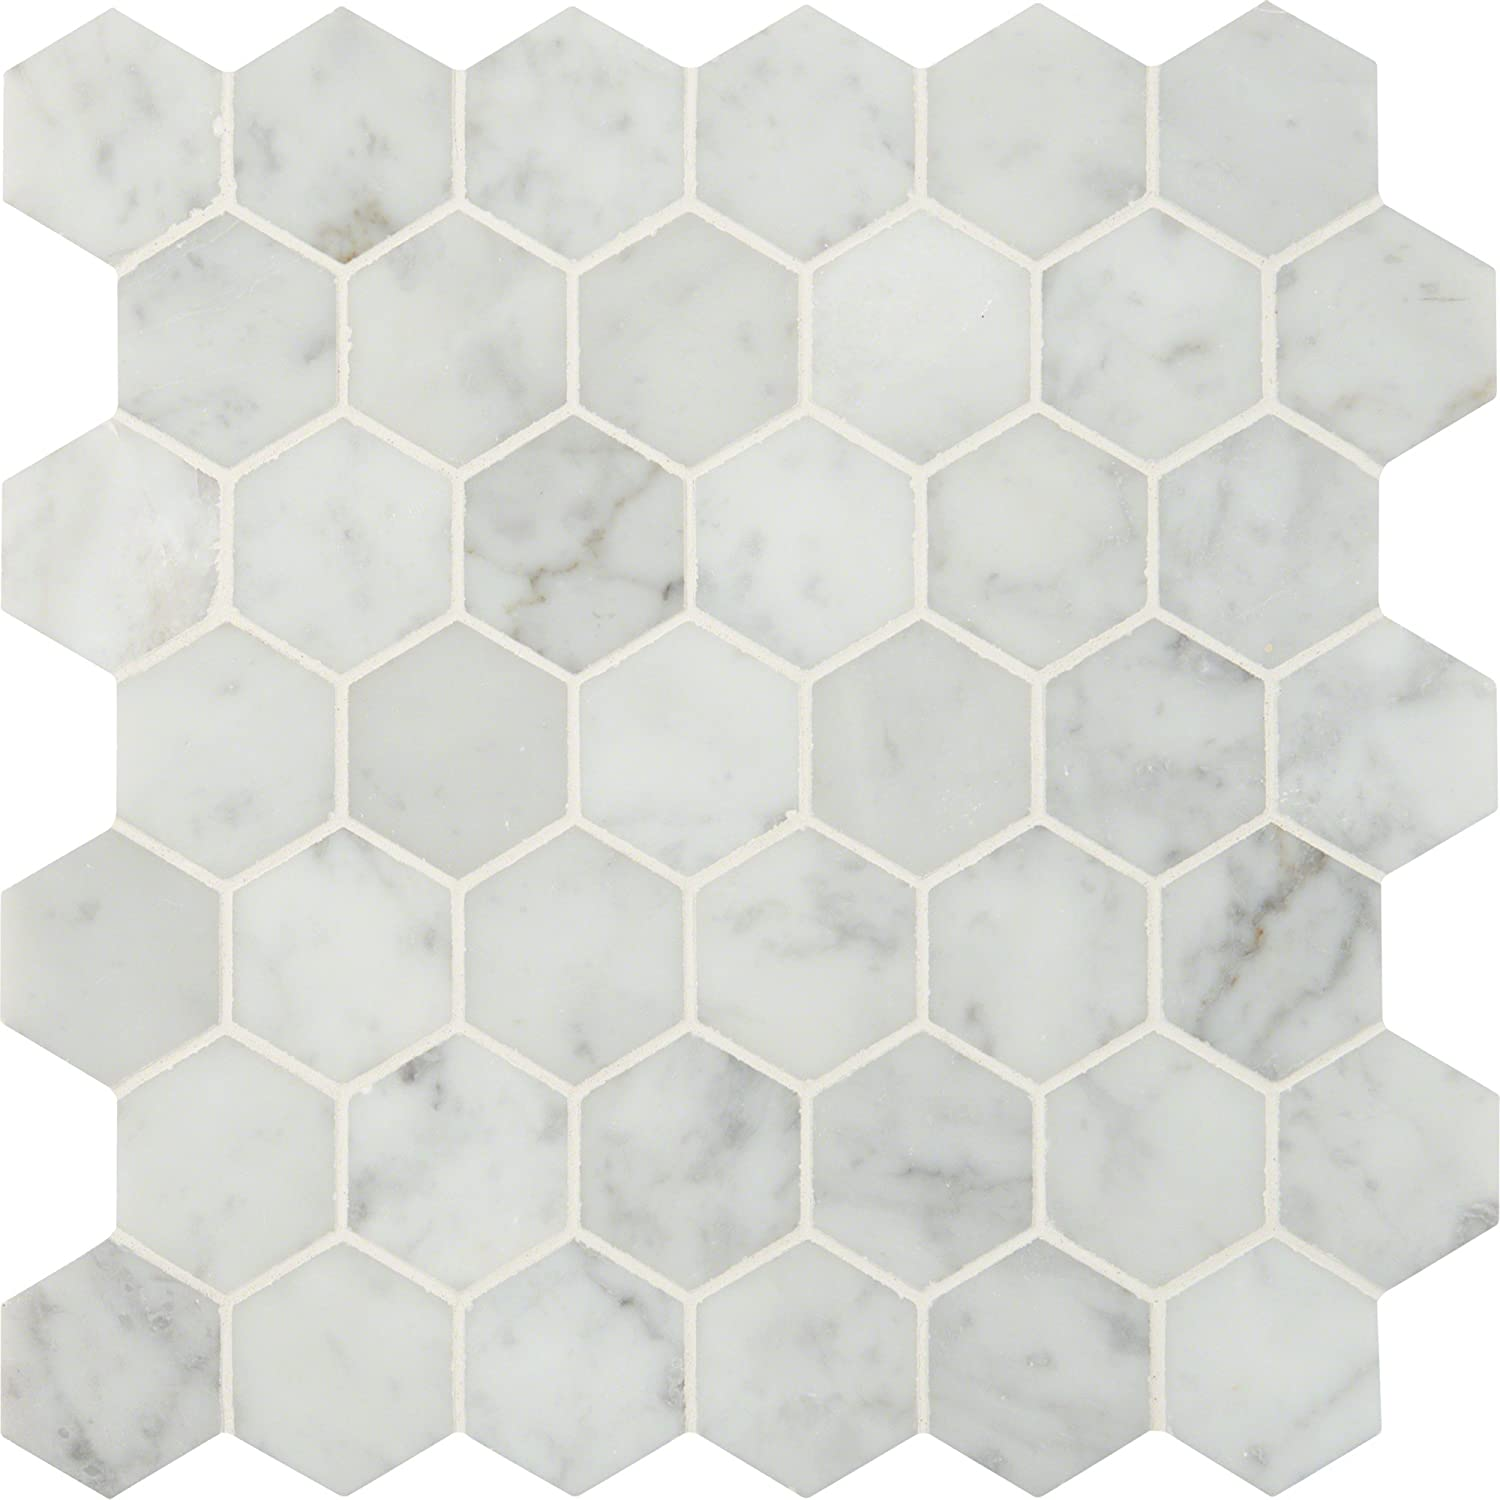 MS International Carrara White Hexagon 30 In. X 30 mm Polished Marble  Mesh-Mounted Mosaic Floor & Wall Tile, (30 sq. ft., 30 pieces per case)